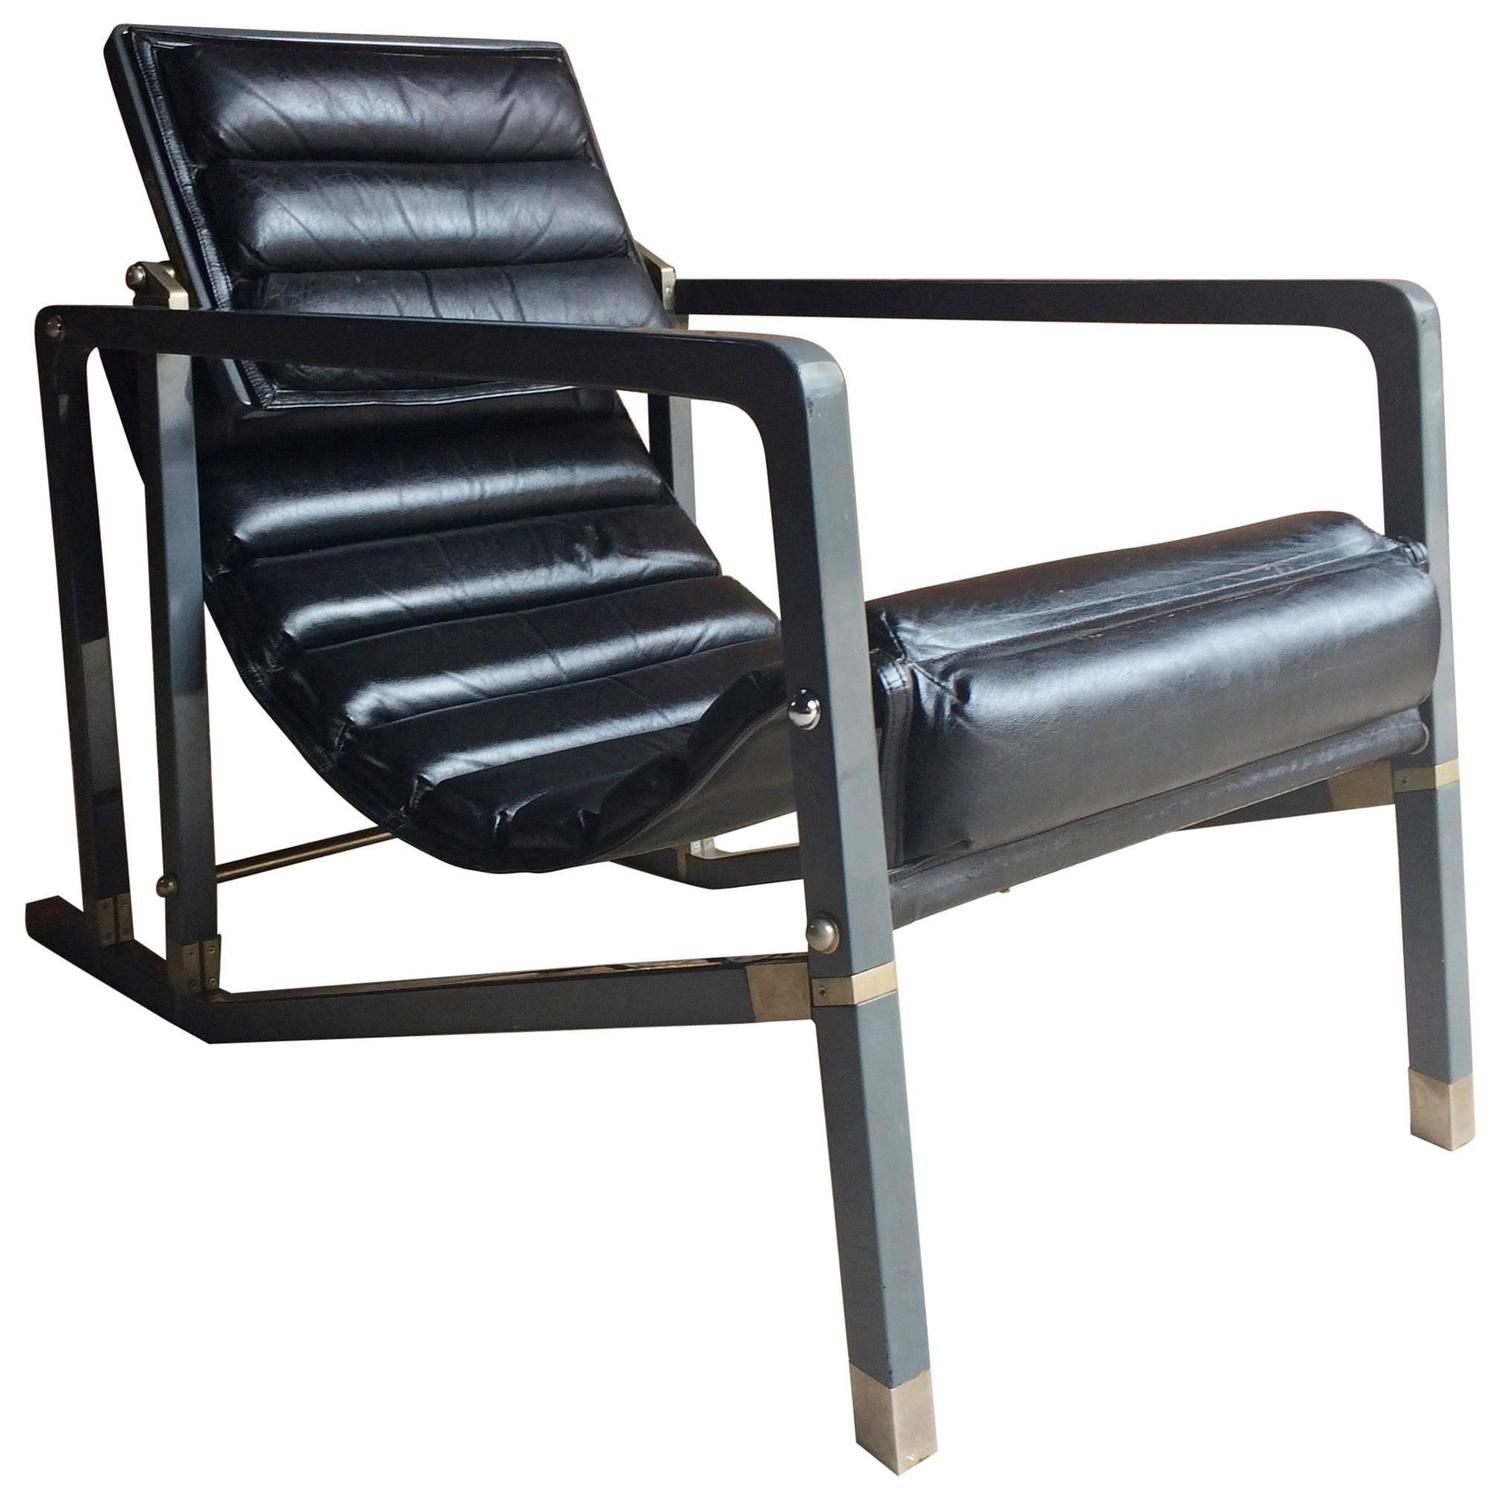 Iconic Modern Furniture Iconic Transat Chair By Eileen Gray Manufactured By Aram Late